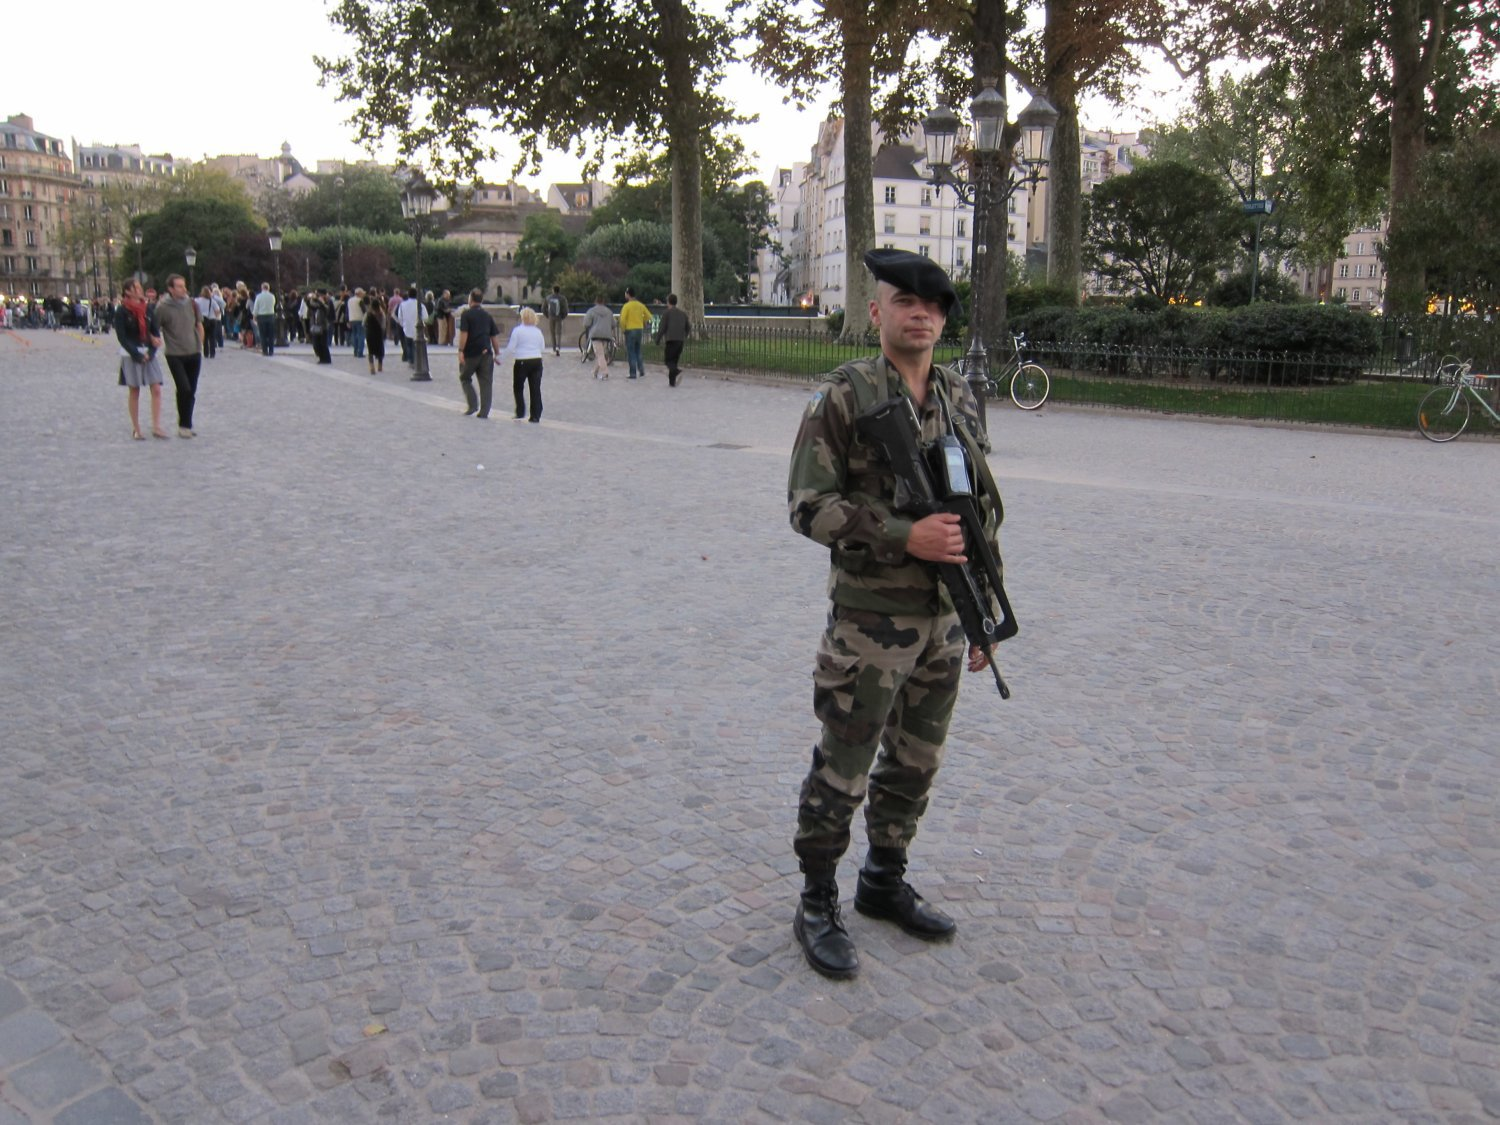 <!--:en-->DefenseReview (DR) back from Paris (France), Where Terrorists Threaten, Socialists Strike and March, French Military and Police Forces Maintain Control, and the City just Keeps Humming Along. Fresh articles on the way!<!--:-->